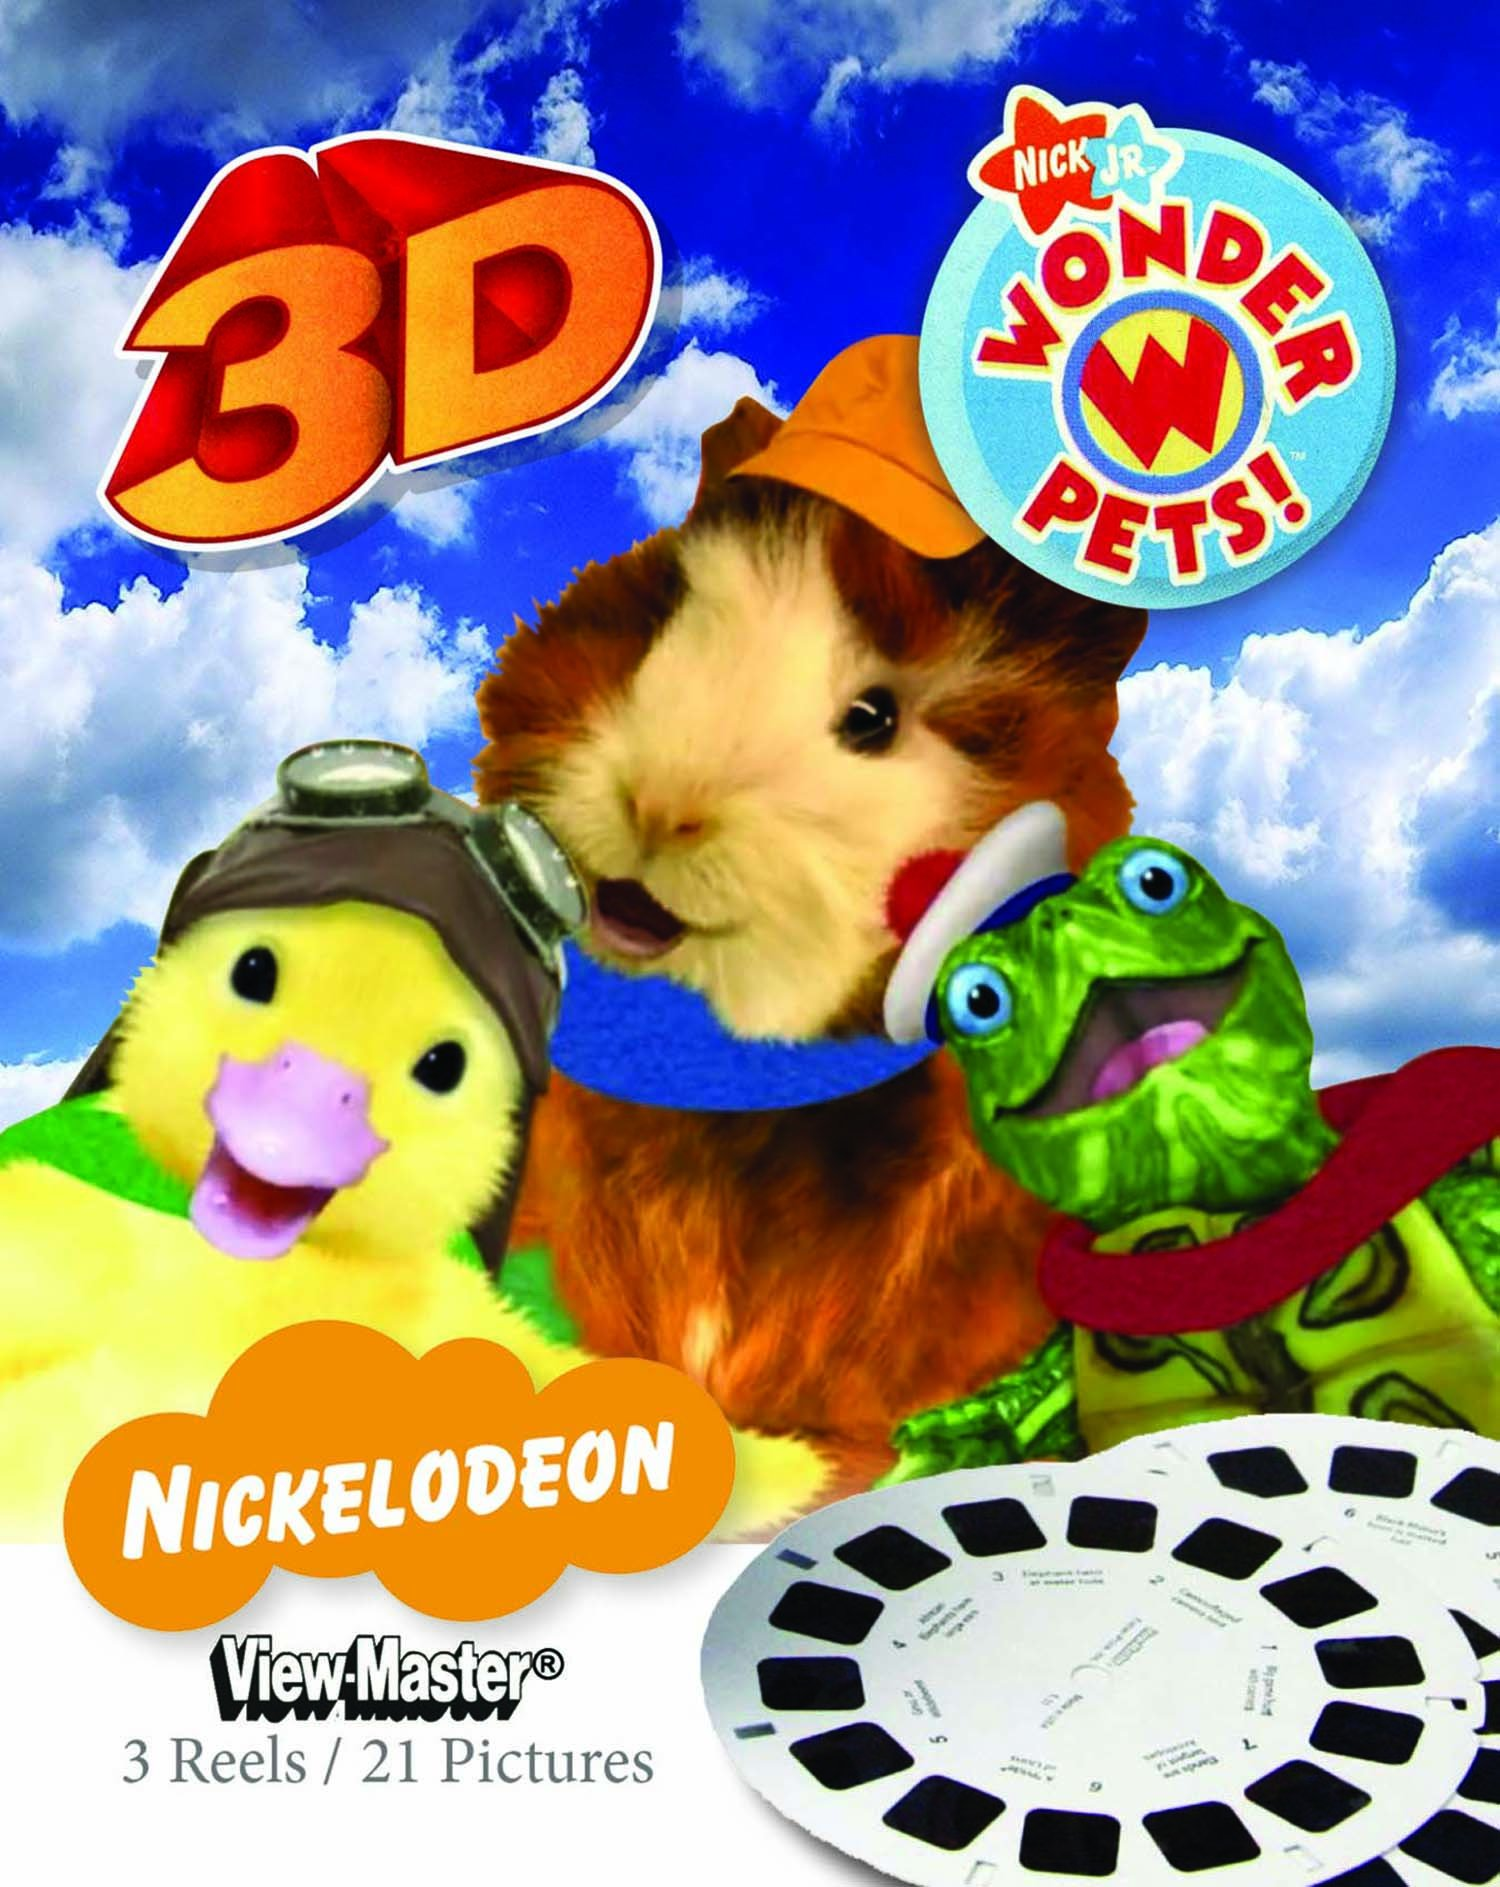 ViewMaster 3D Reels - Wonder Pets 3-pack set by View Master (Image #1)